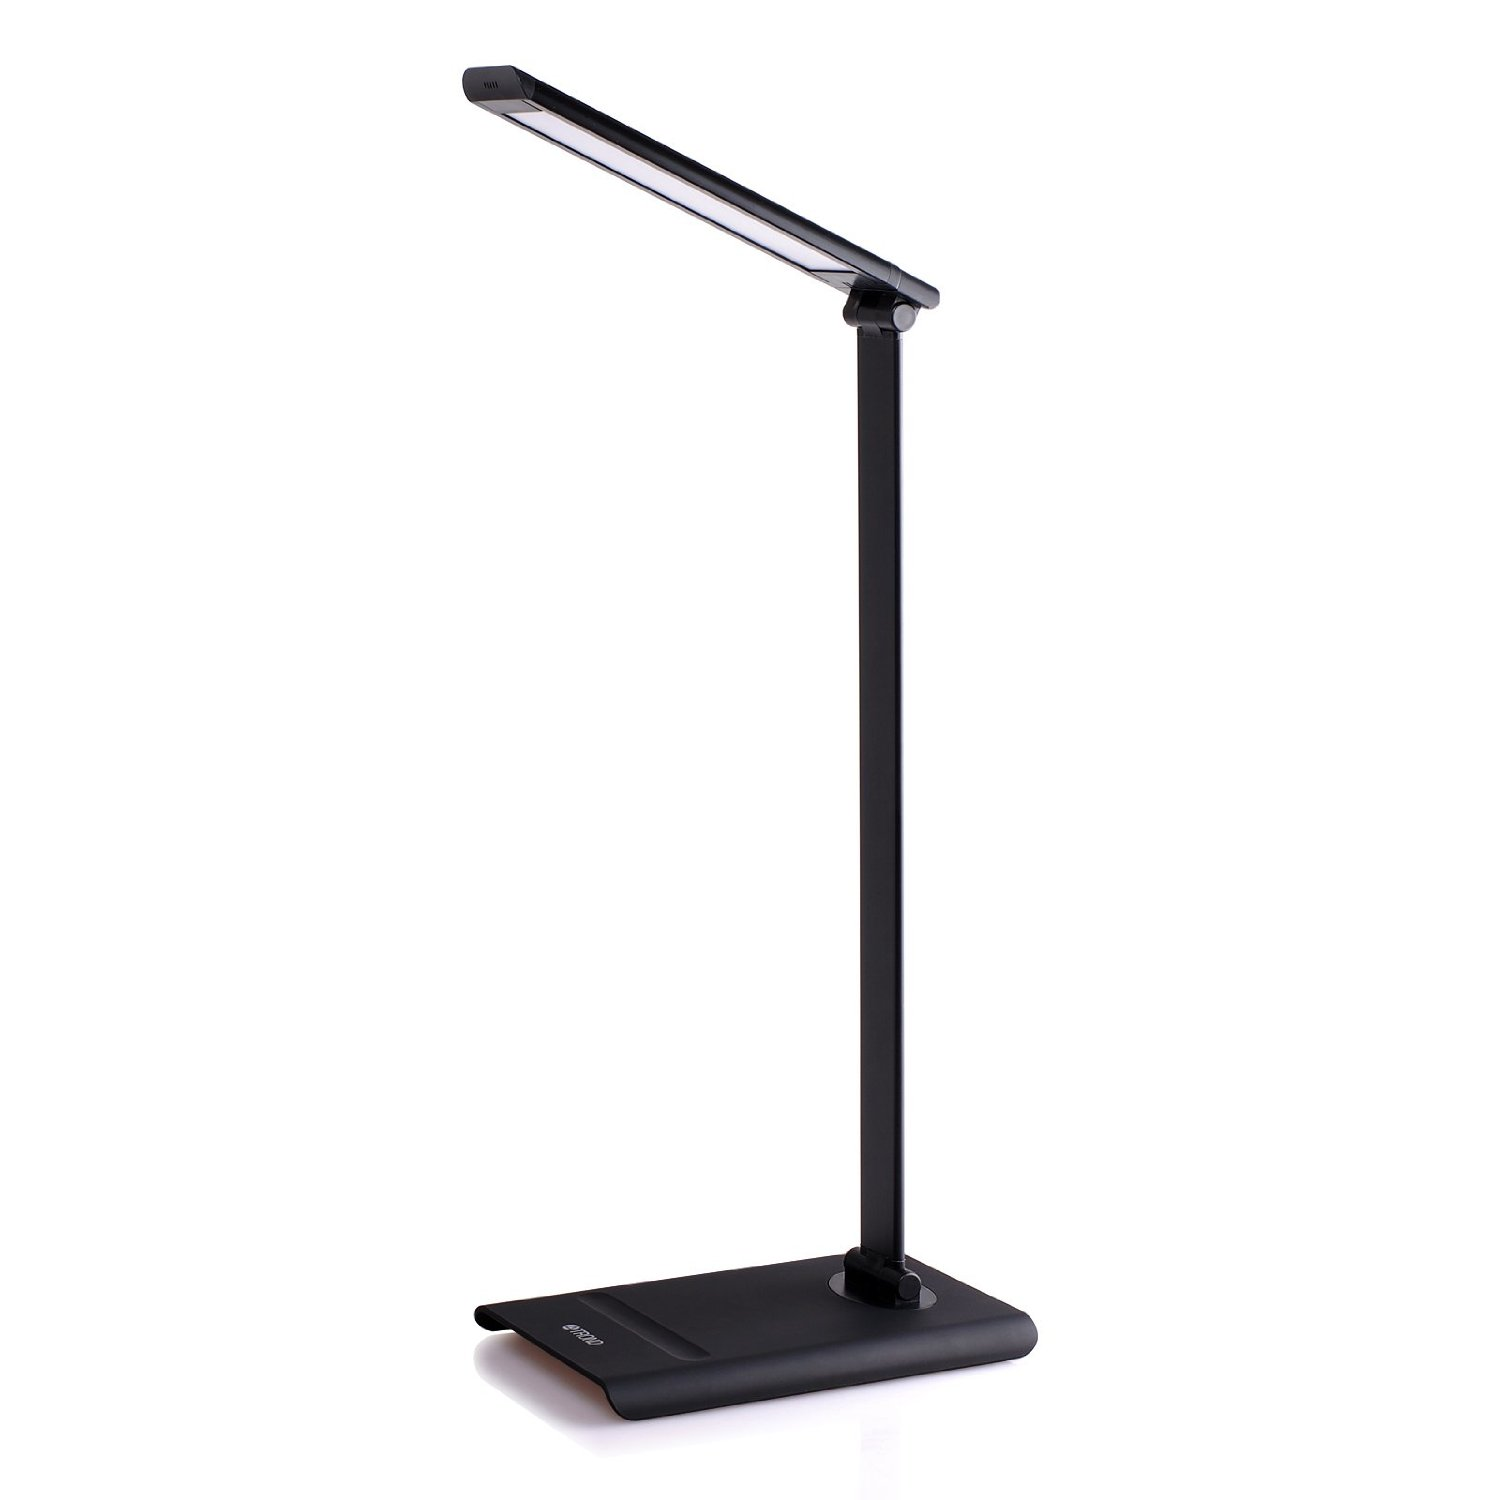 $32.99 [2015 Model] TROND Halo Dimmable Eye-Care LED Desk Lamp